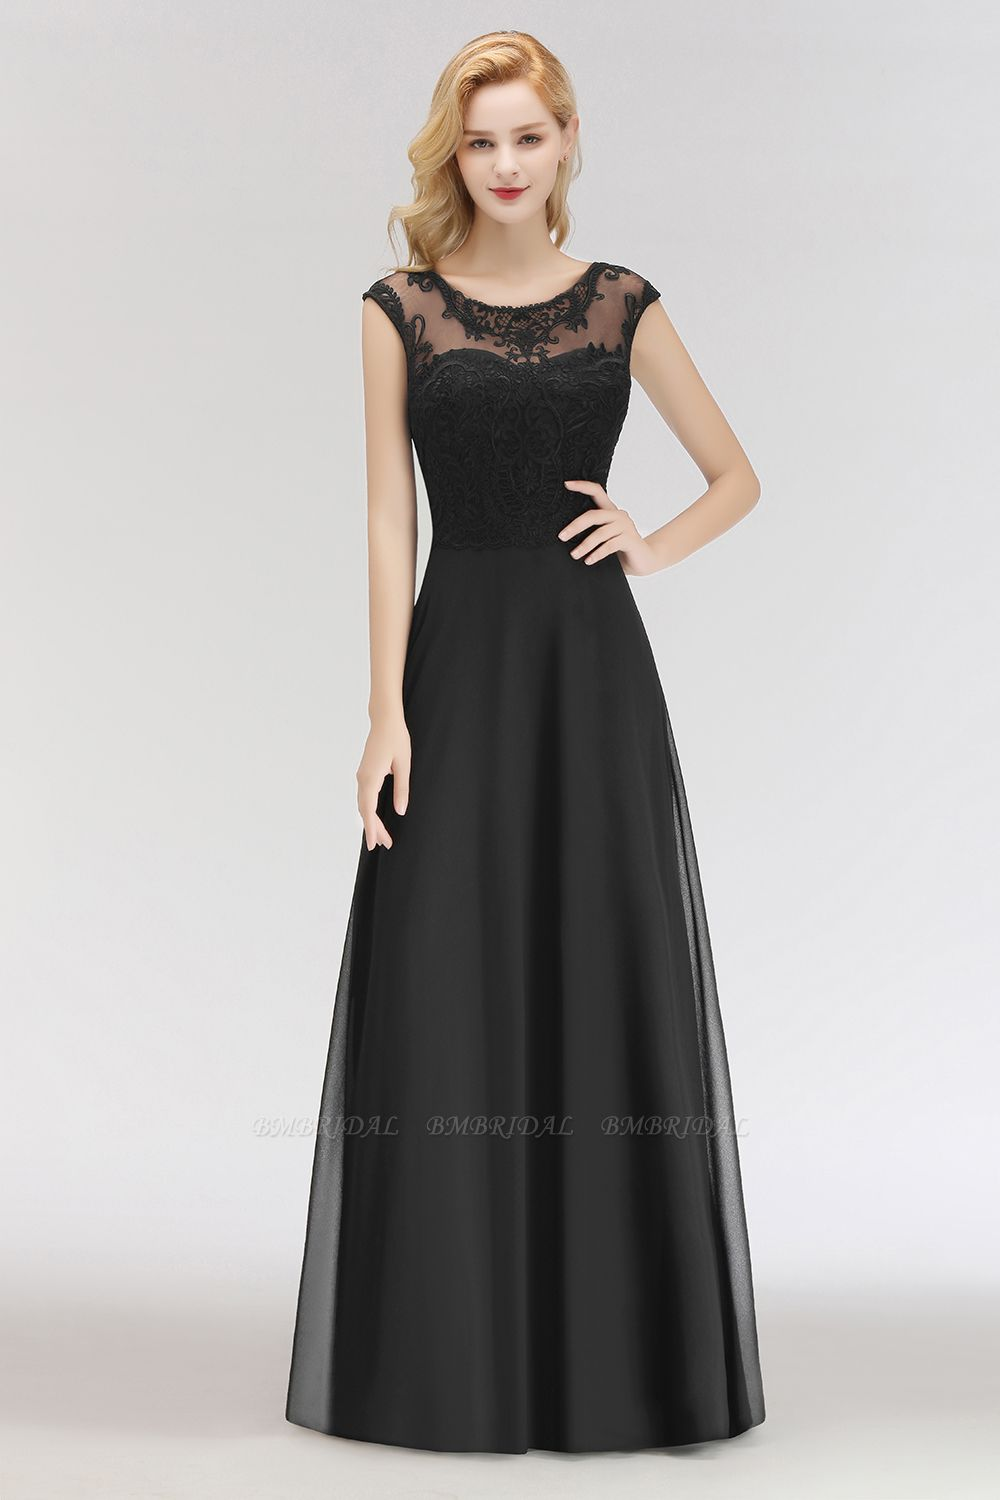 BMbridal Elegant Chiffon Long Lace Black Bridesmaid Dresses Online